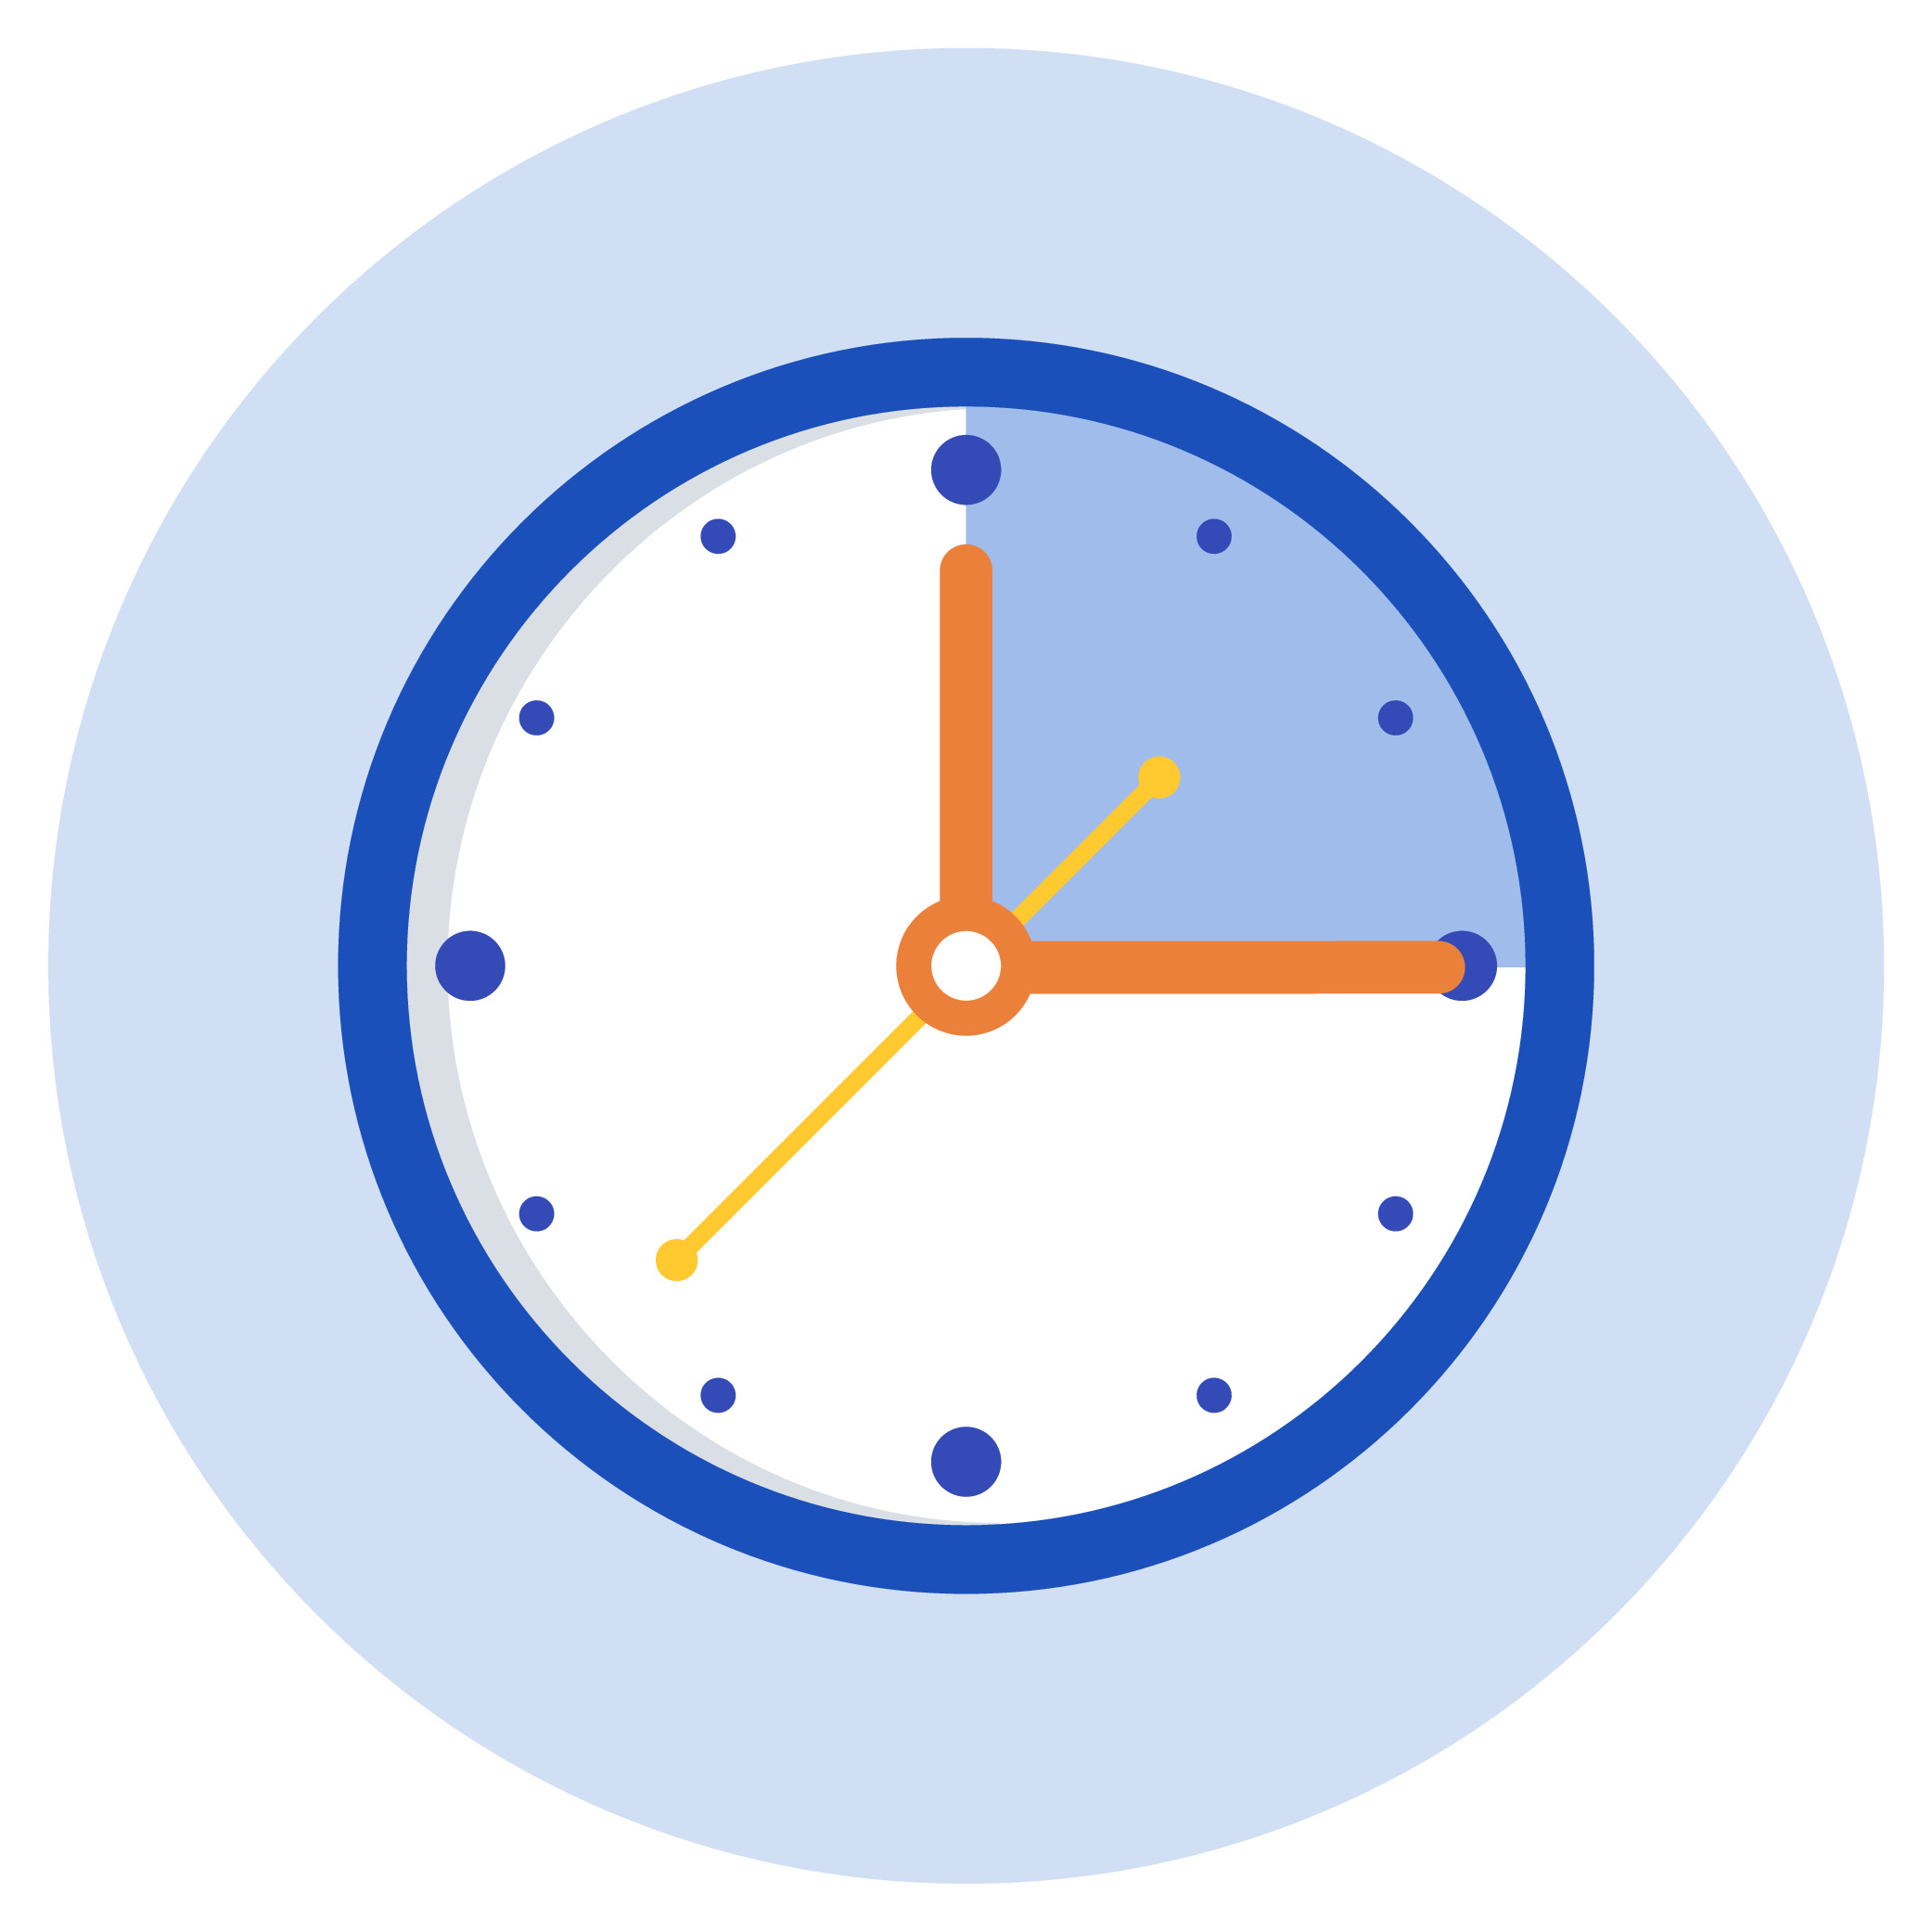 A clock showing a time span of 15 minutes